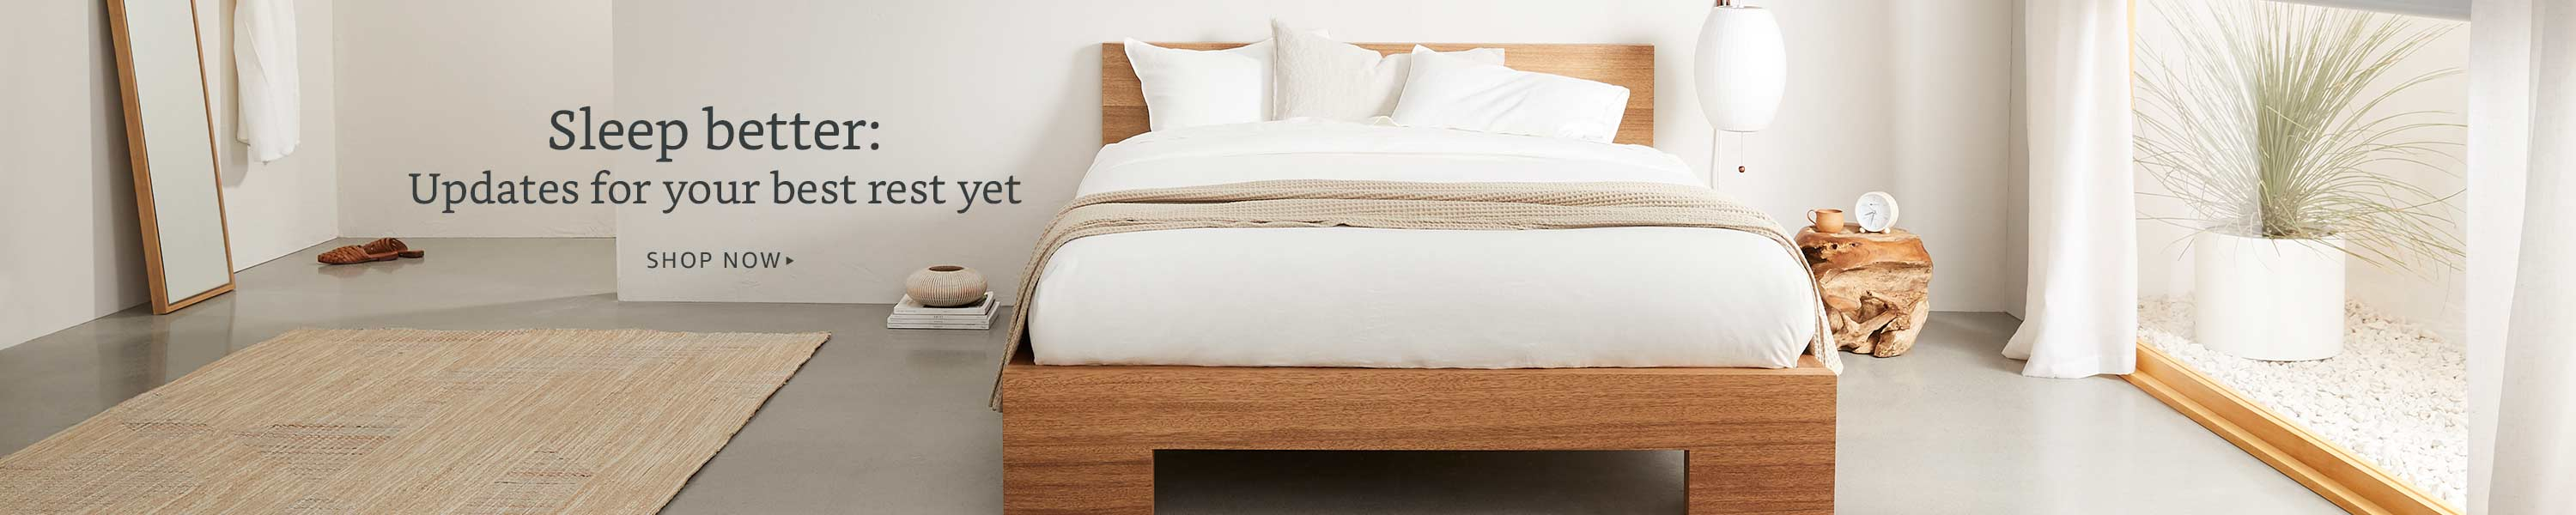 Sleep better: updates for your best rest yet